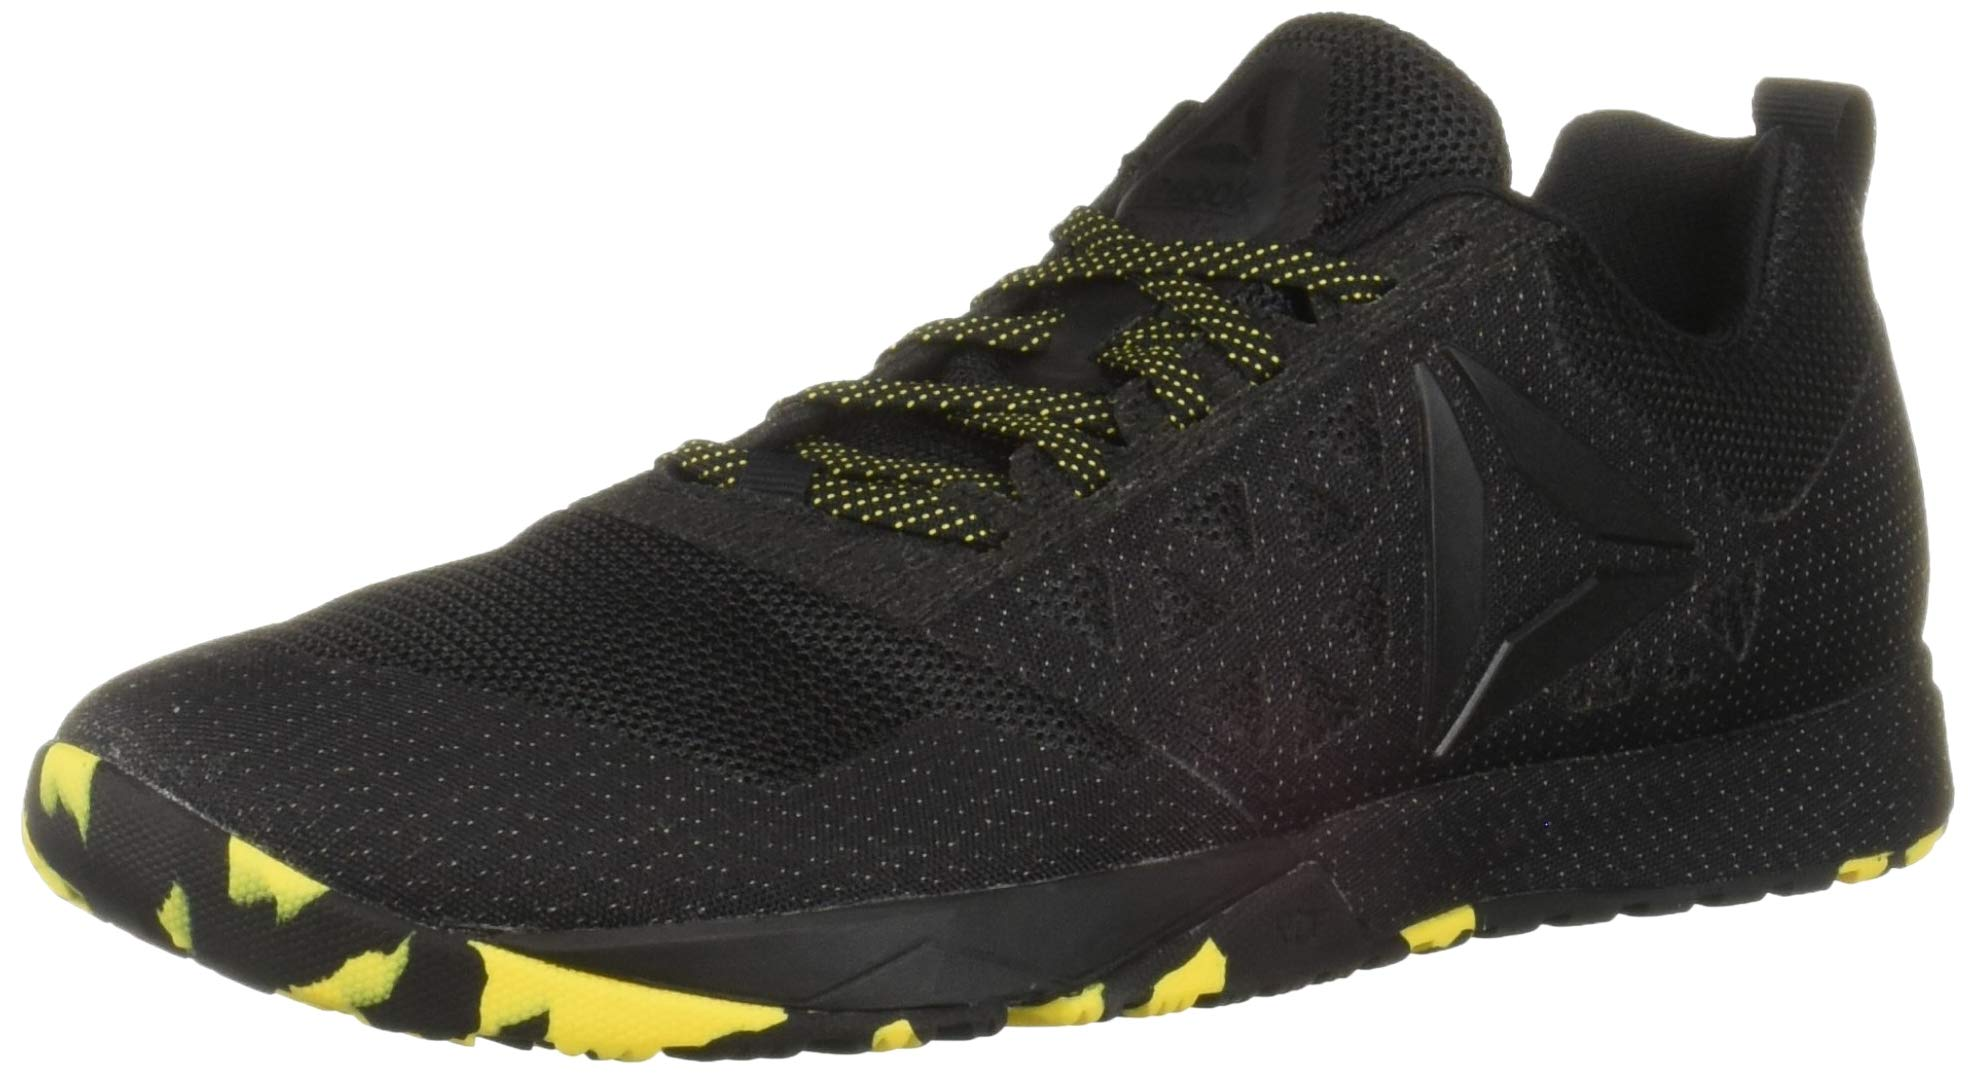 Reebok Women's CROSSFIT Nano 6.0 Cvrt Cross Trainer, Black/Go Yellow, 9.5 M US by Reebok